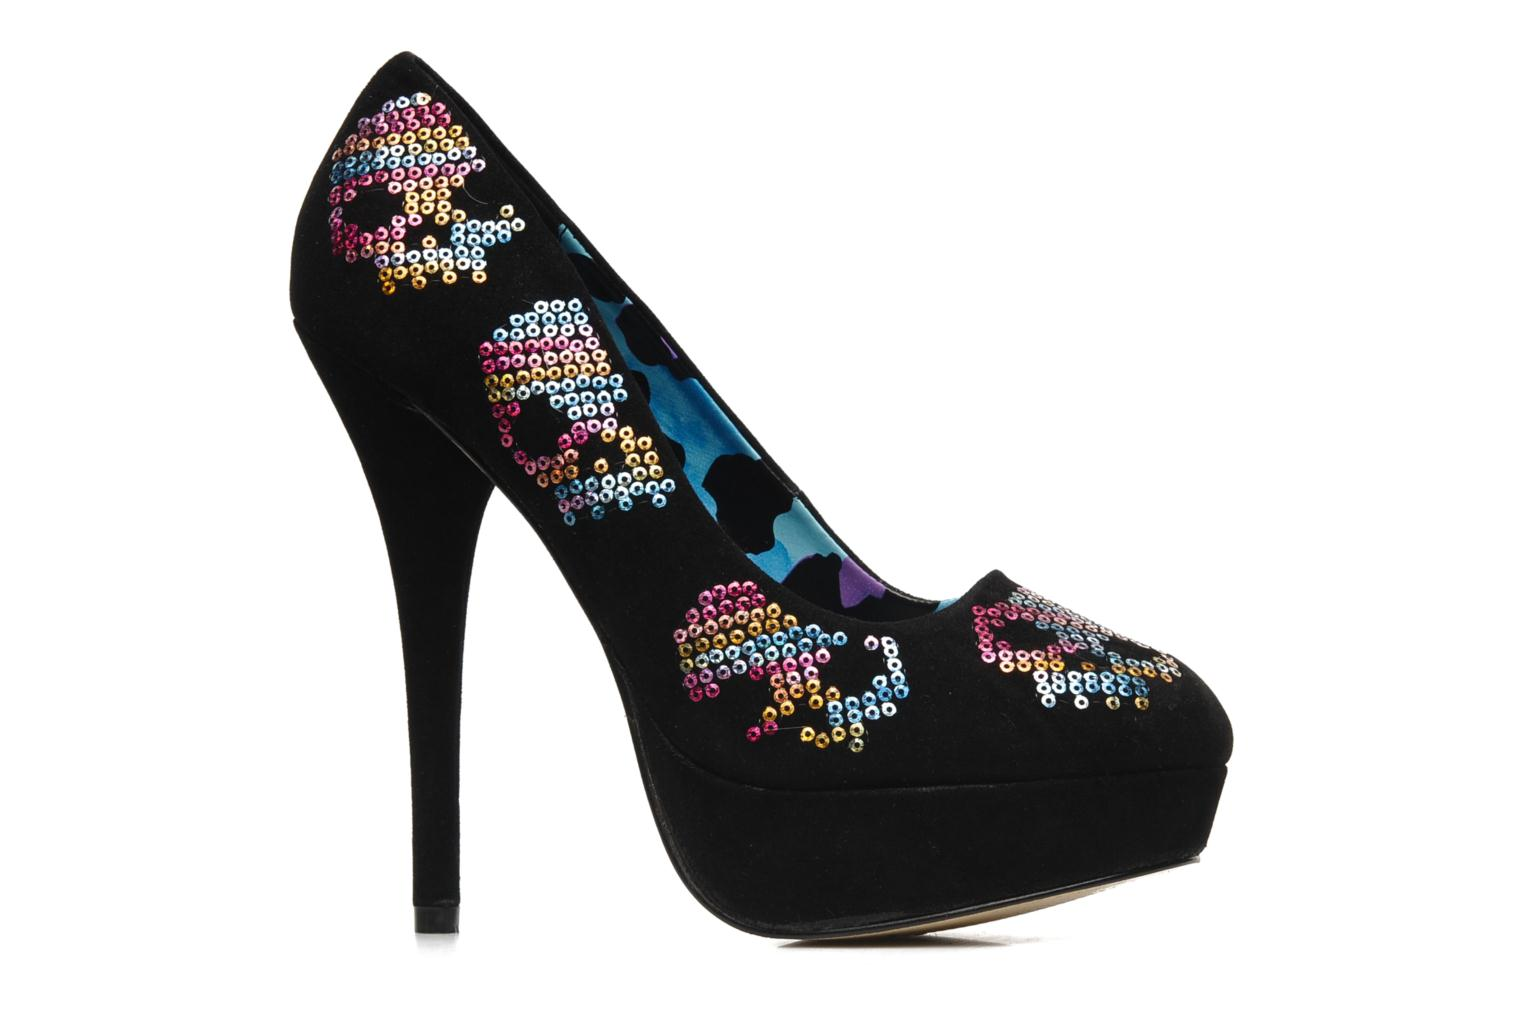 Sugar hiccup platform Black/multi